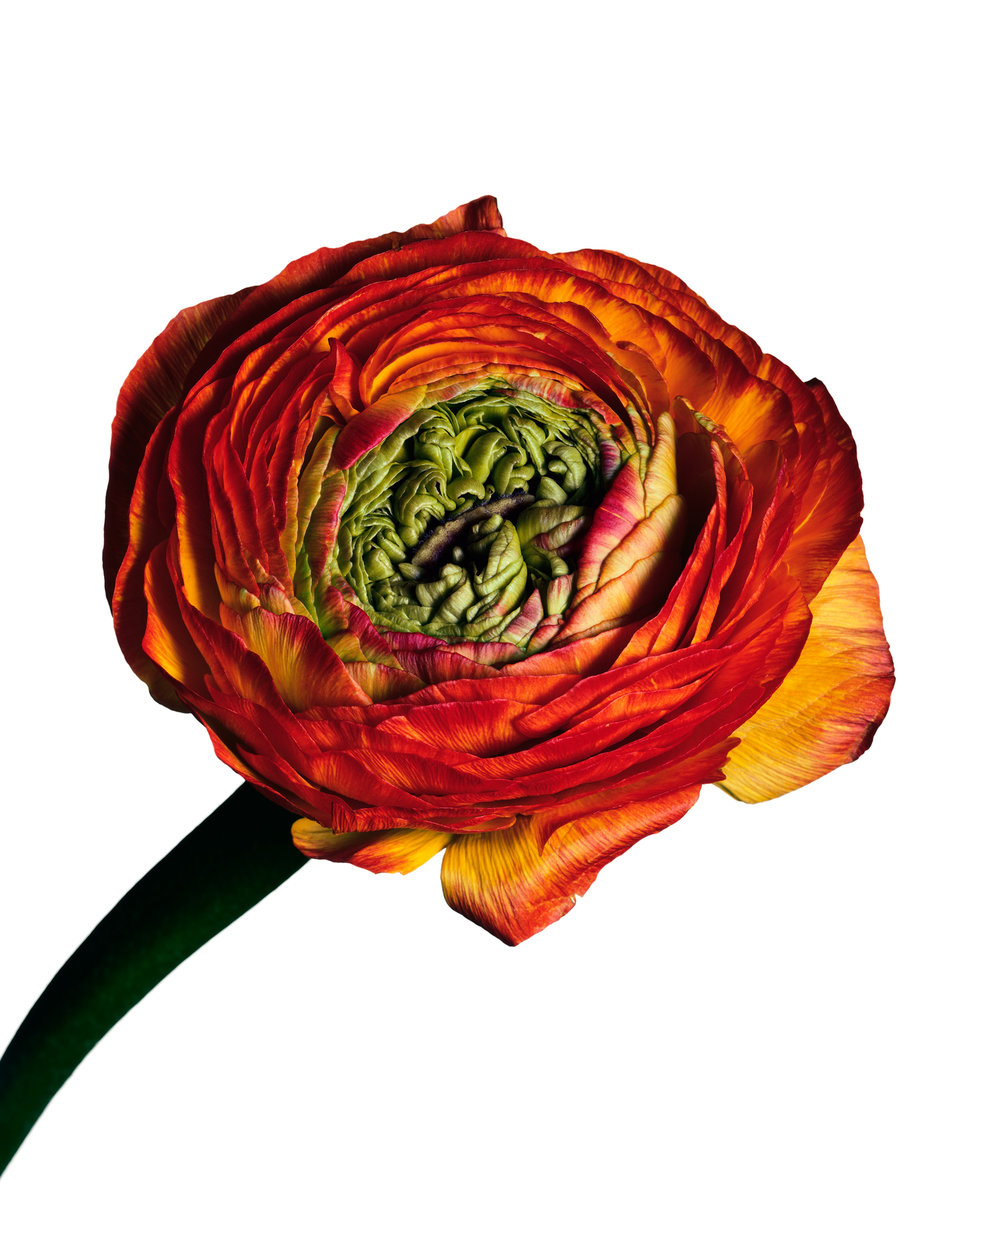 Ranunculus 'Picotee' , New York, 2006 Inkjet print © The Irving Penn Foundation